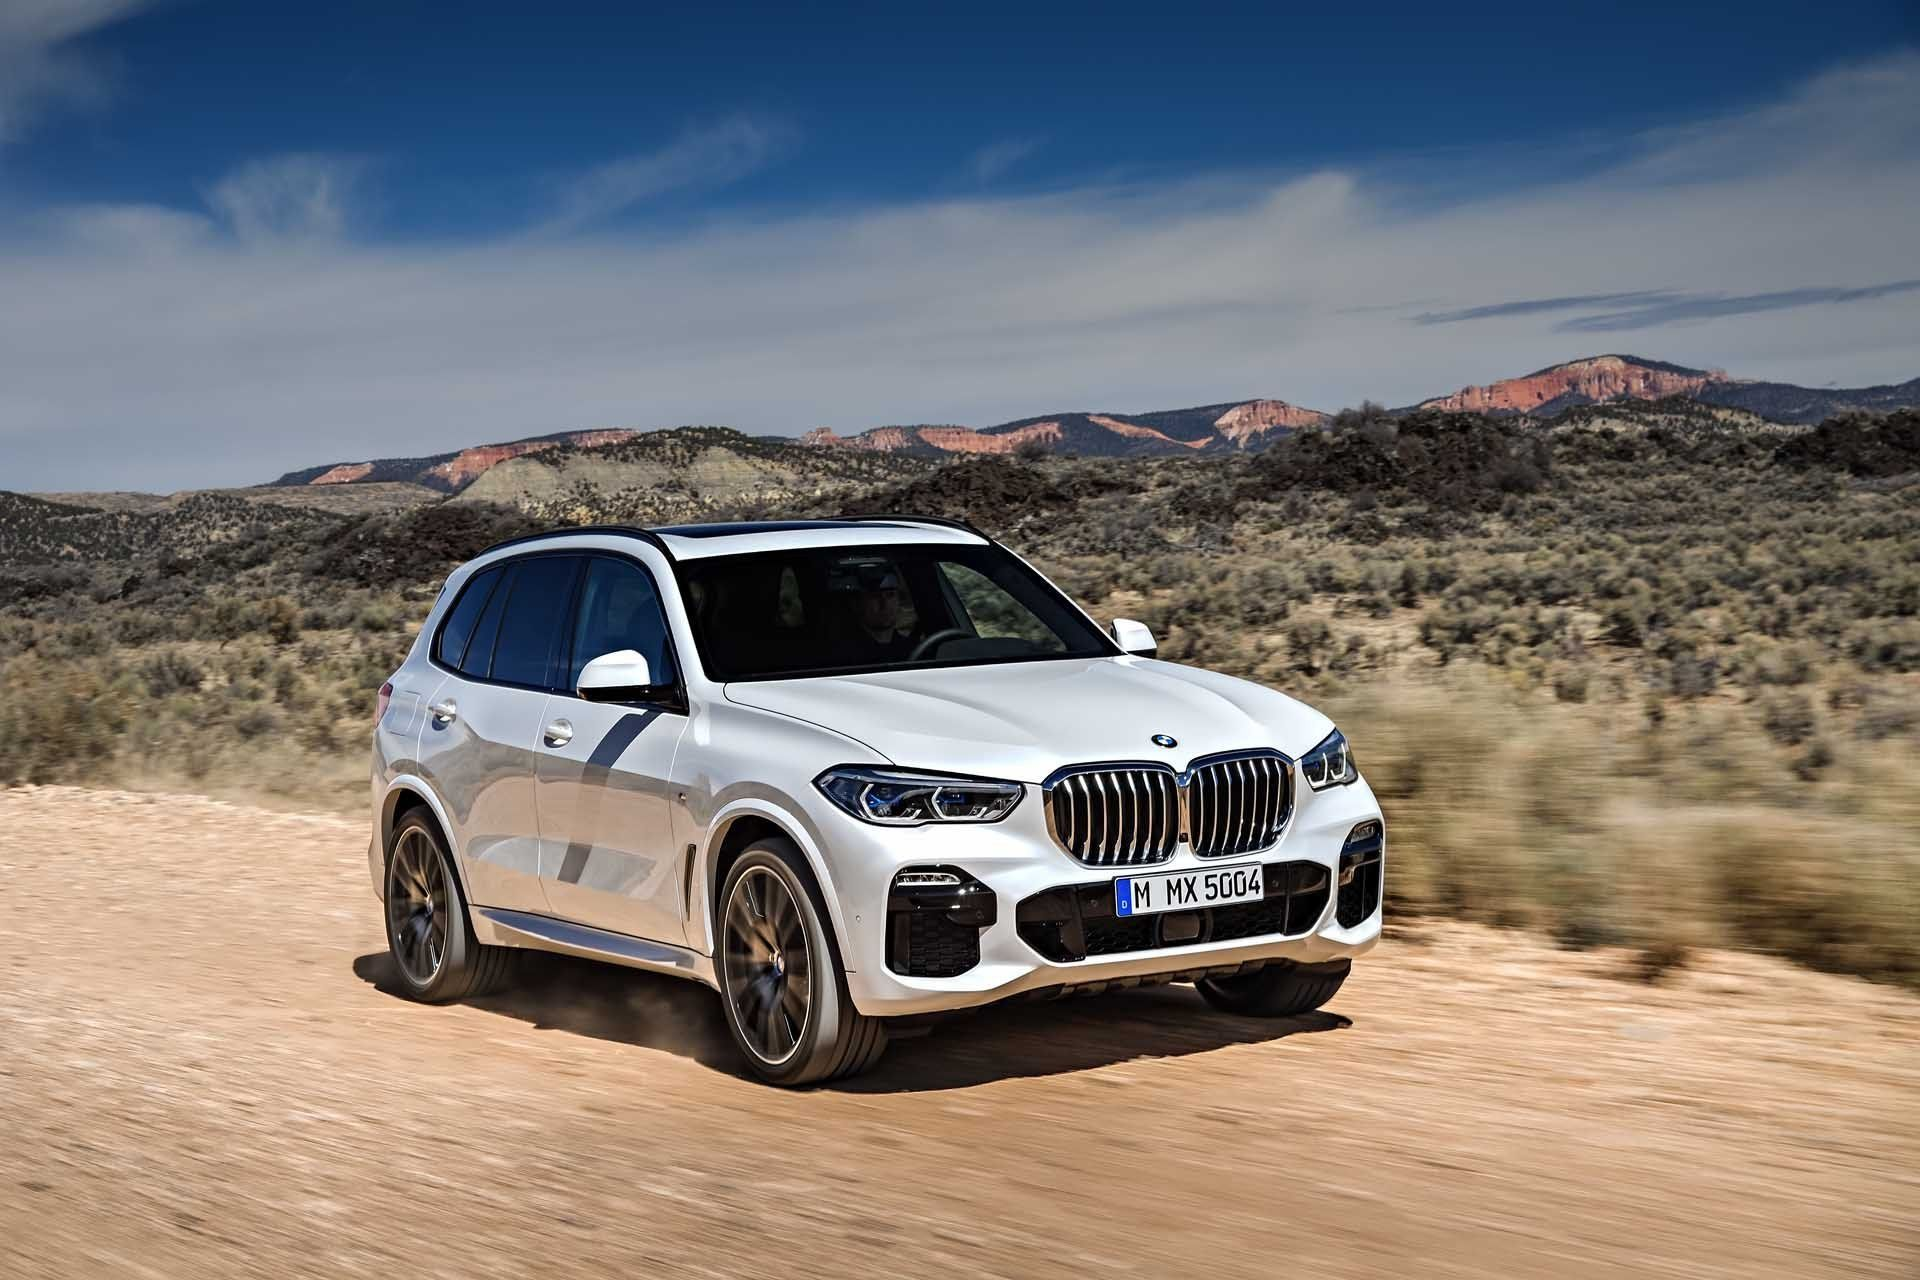 2021 Next Gen BMW X5 Suv Specs and Review